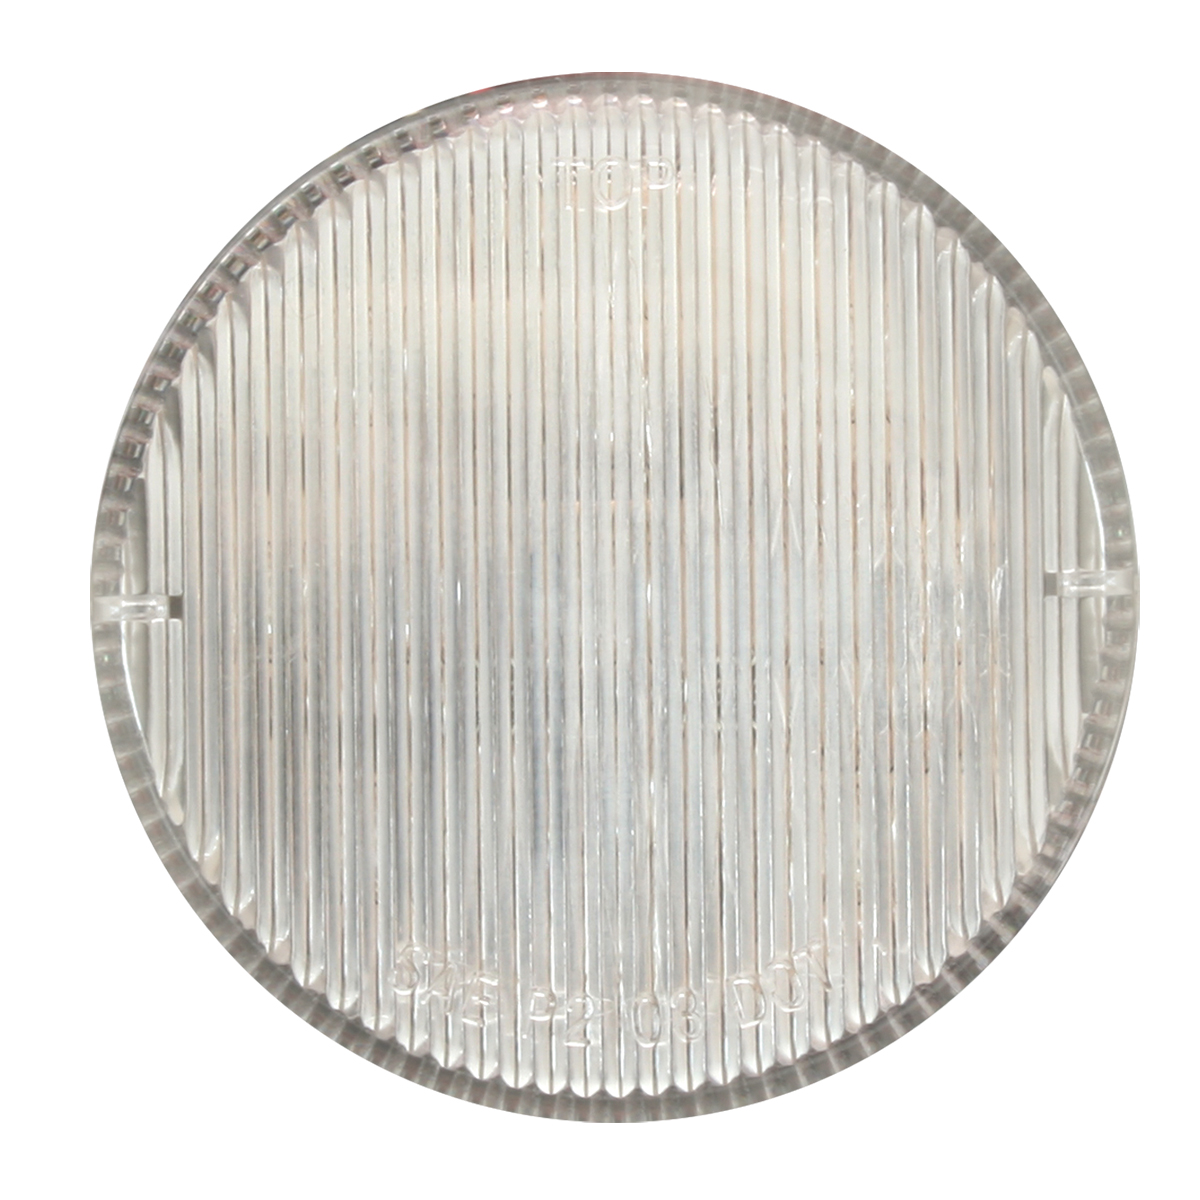 "2-1/2"" Round Fleet Marker Light in Clear Lens"